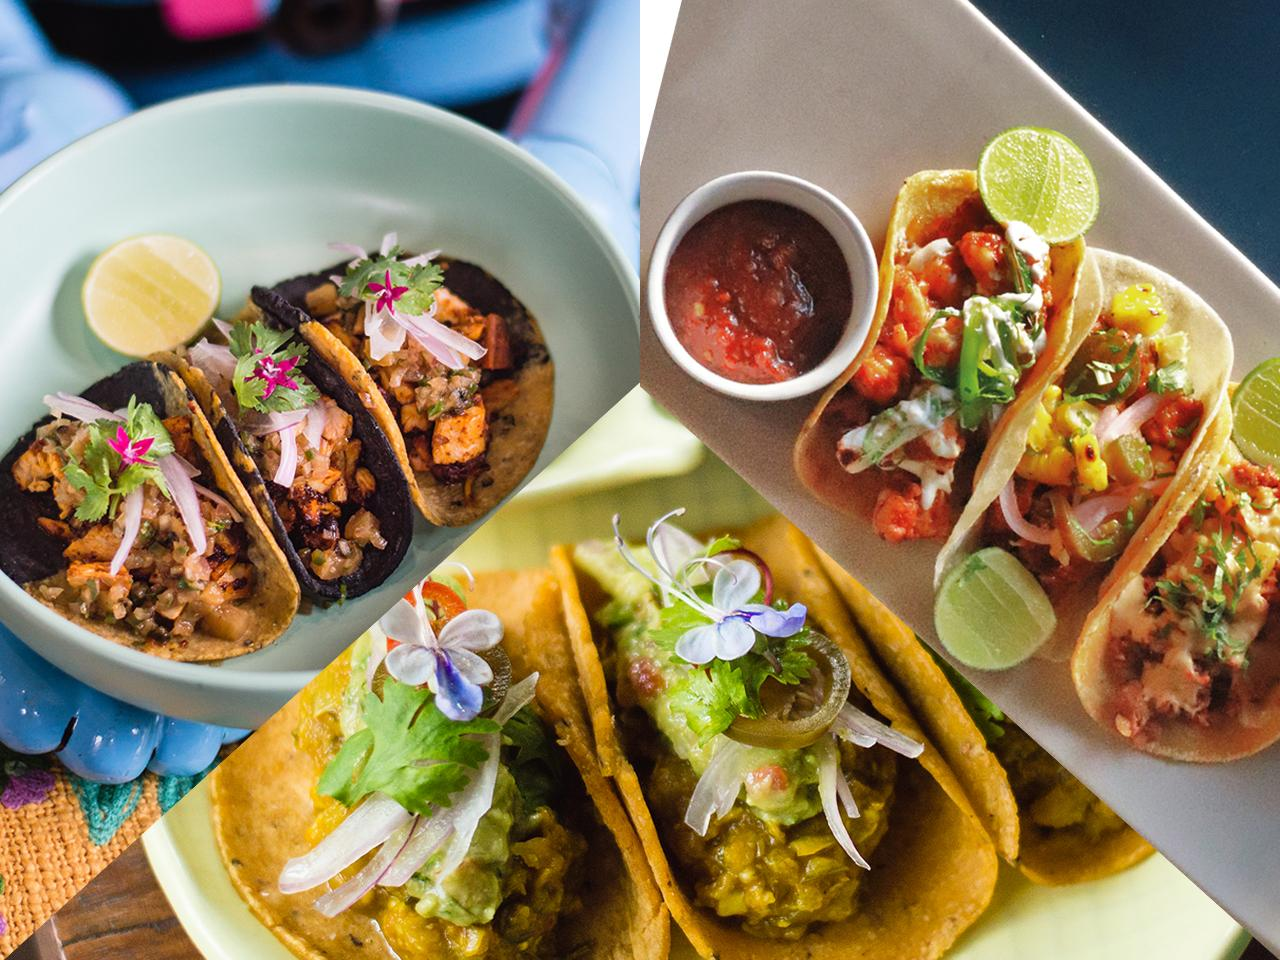 Celebrate Mexican culture with taco tasting